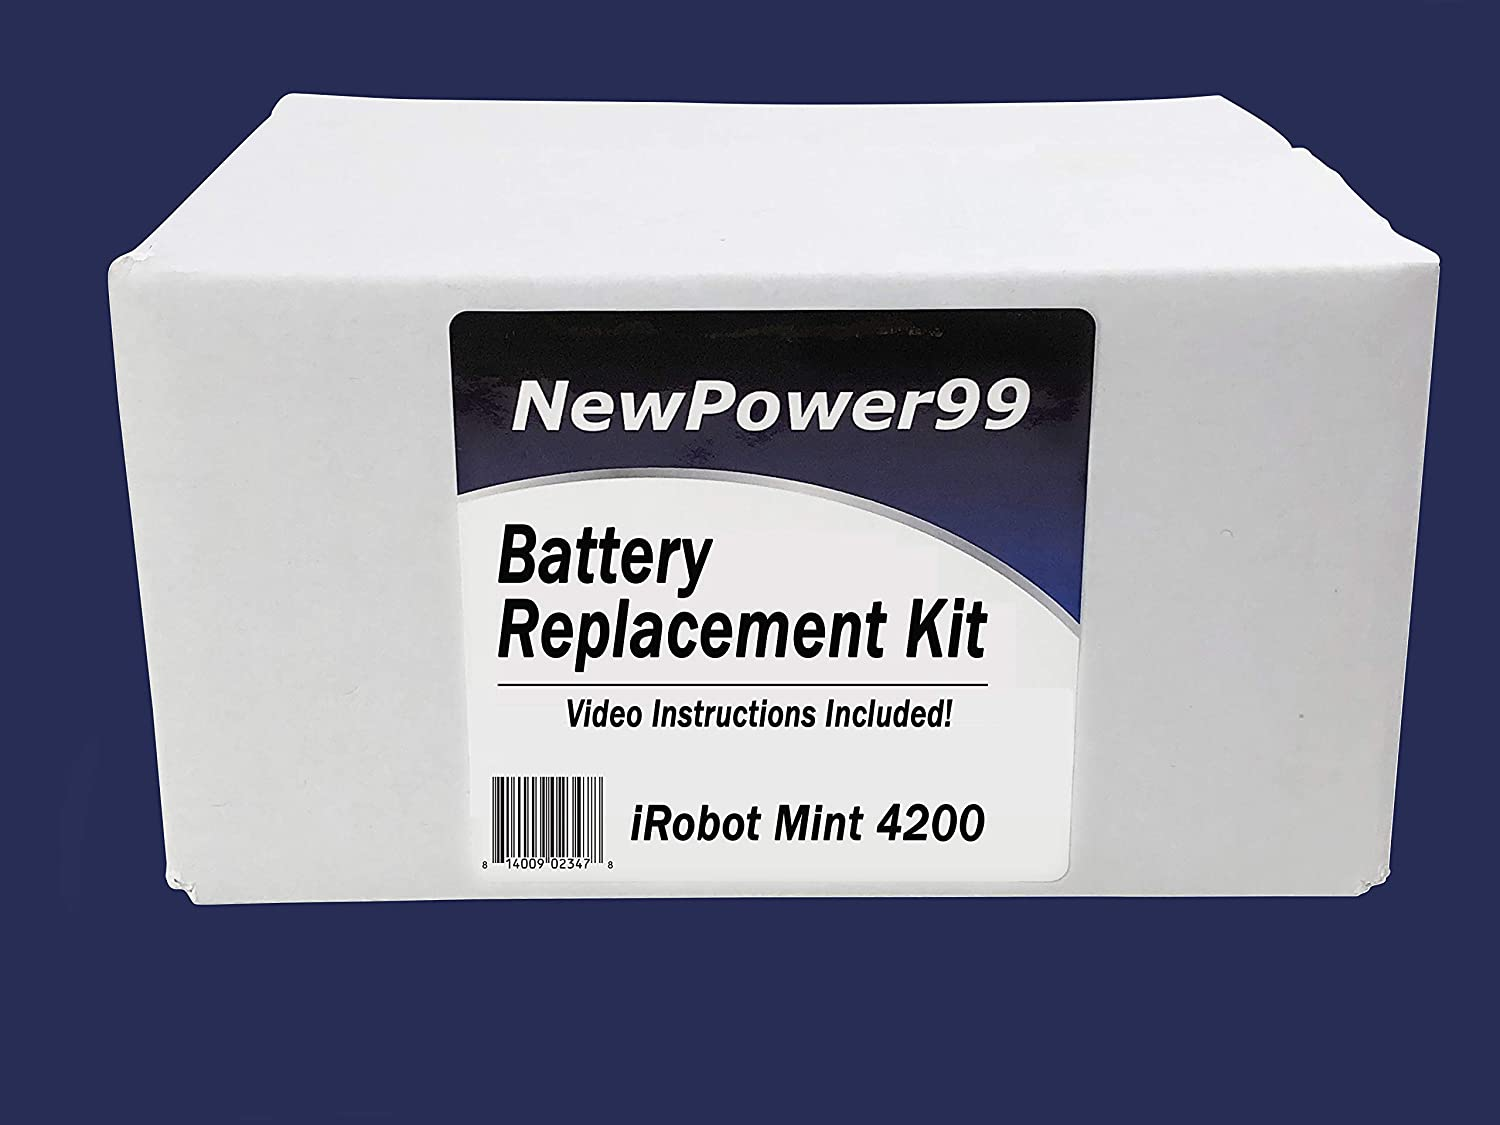 Battery Kit for IRobot Mint 4200 with Video Instructions and Battery from NewPower99